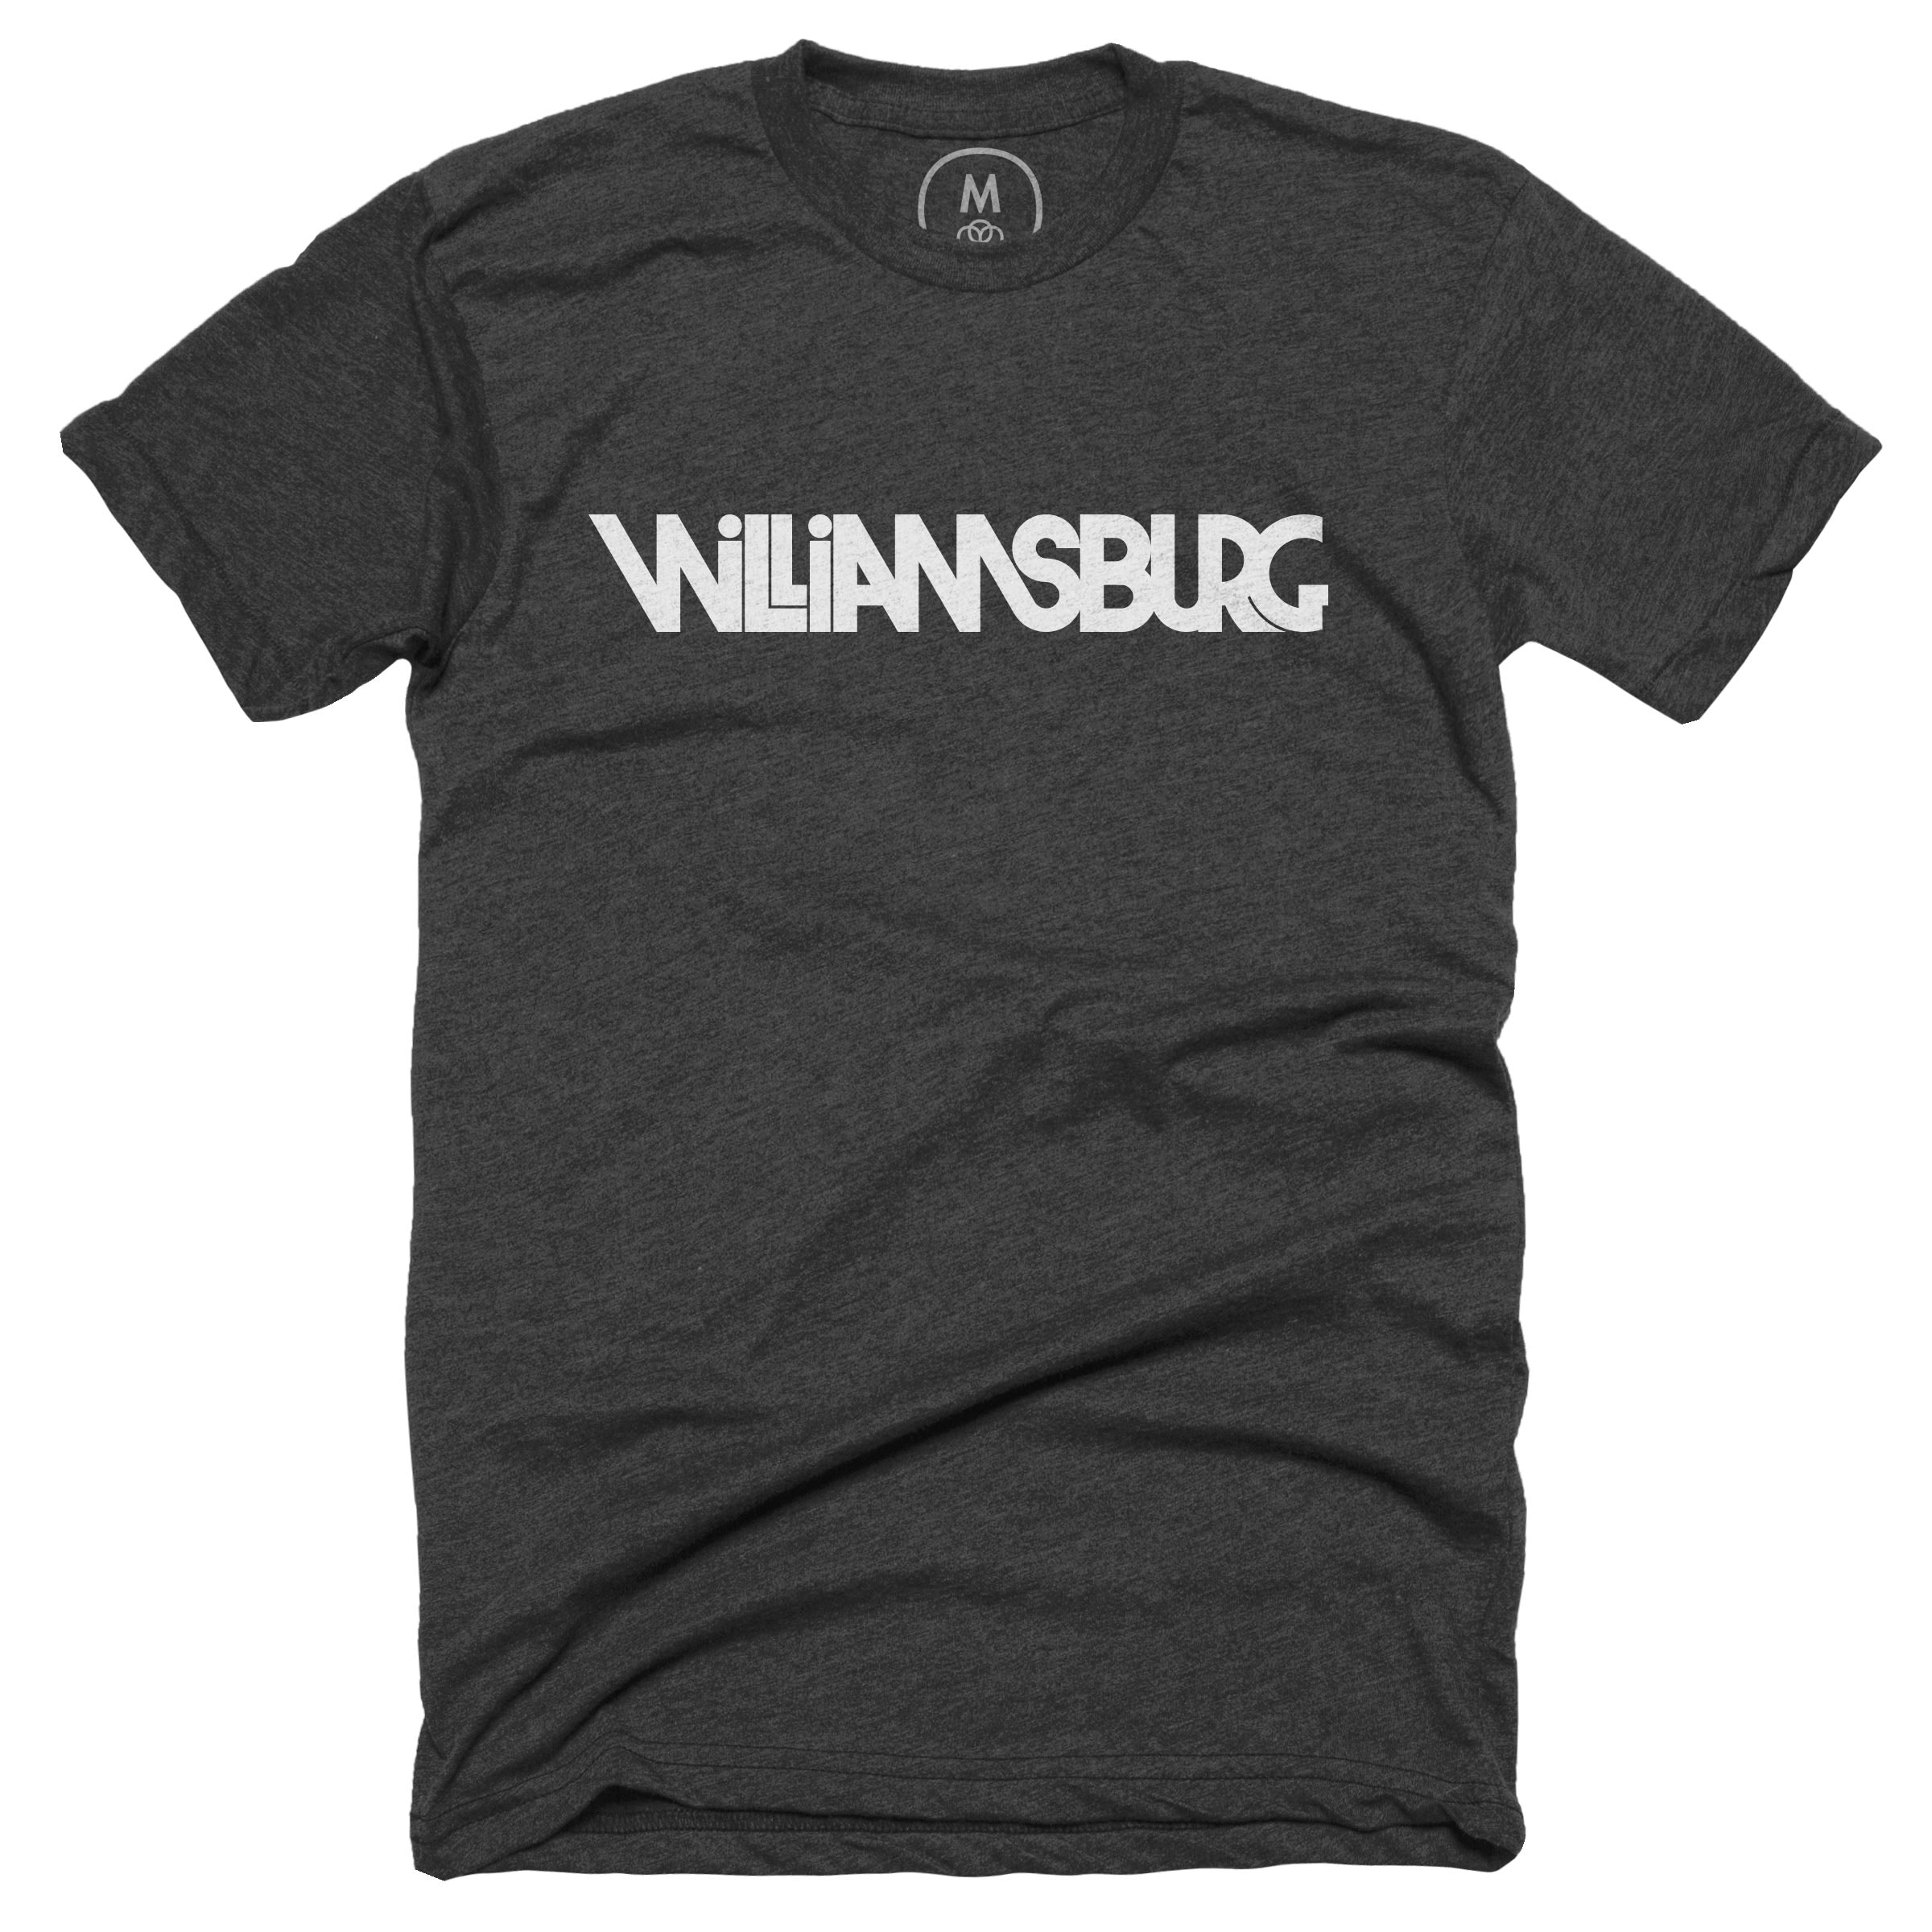 Williamsburg Heather Black (Men's)